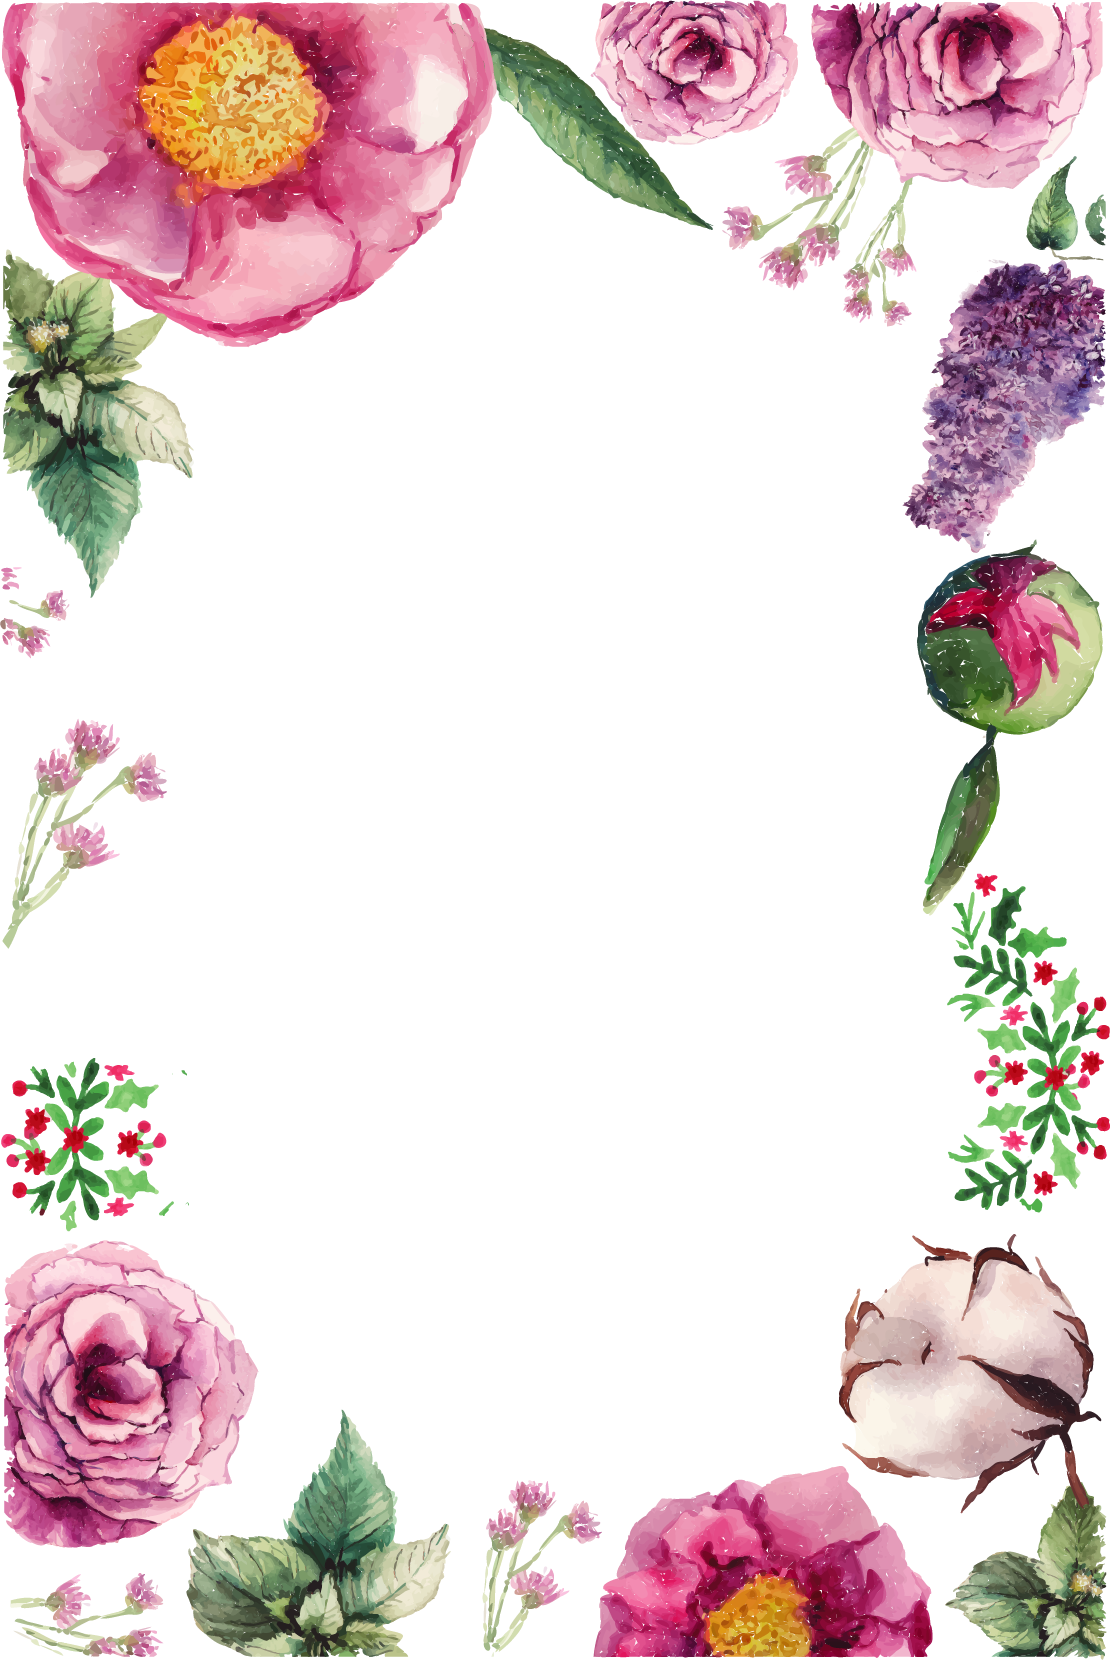 Download Flower Greeting Birthday Vector Flowers Border ...